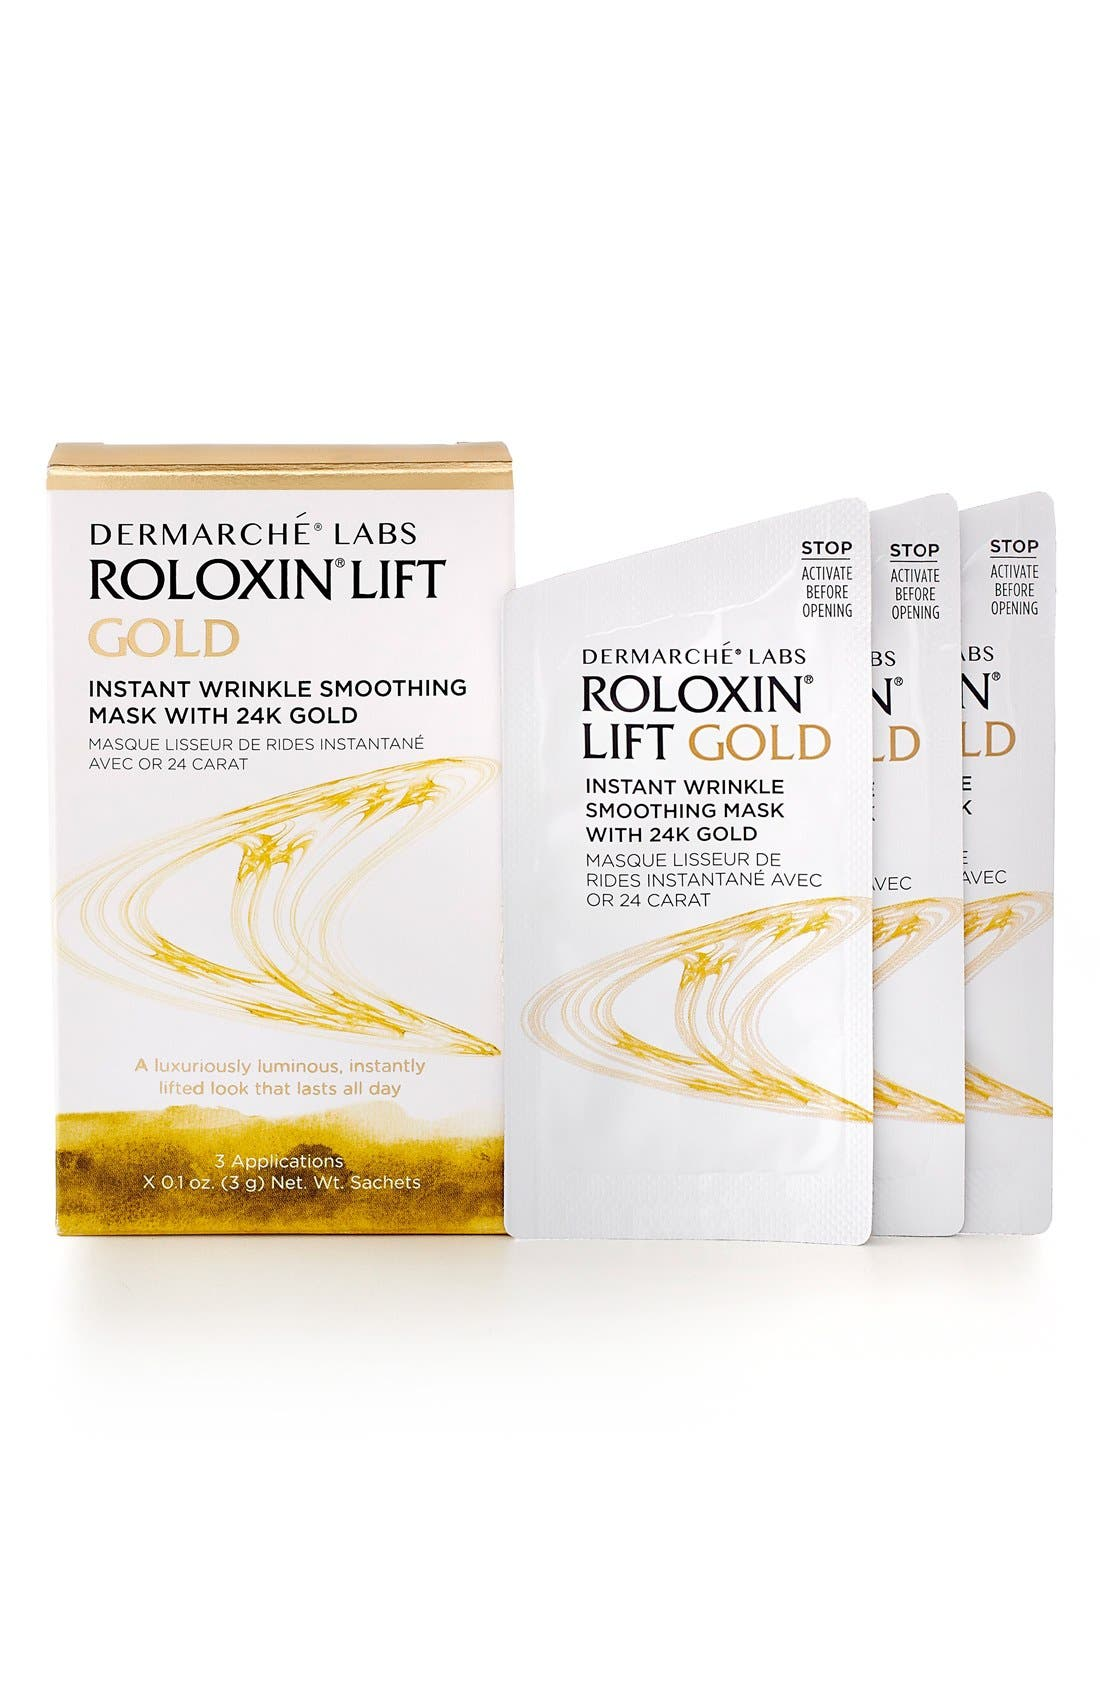 Dermarché® Labs Roloxin® Lift Gold Instant Wrinkle Smoothing Mask with 24K Gold